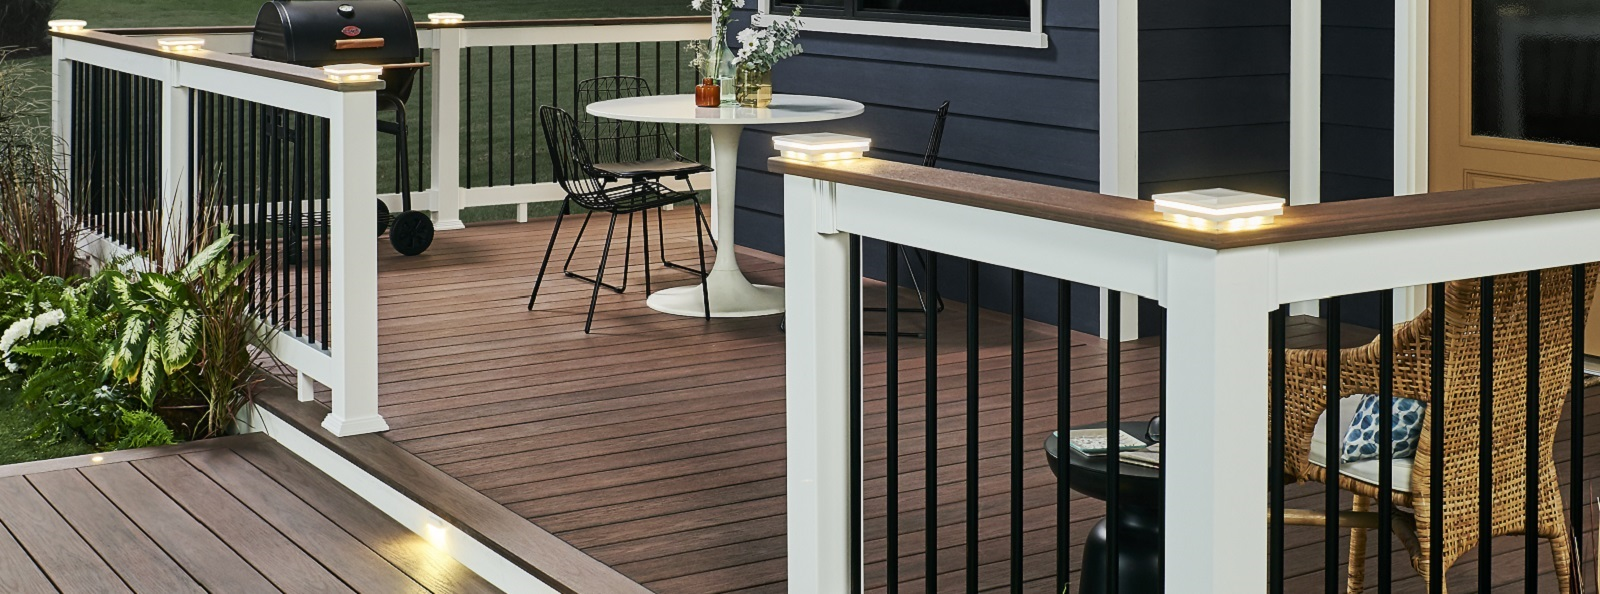 Outside Deck with White Railings